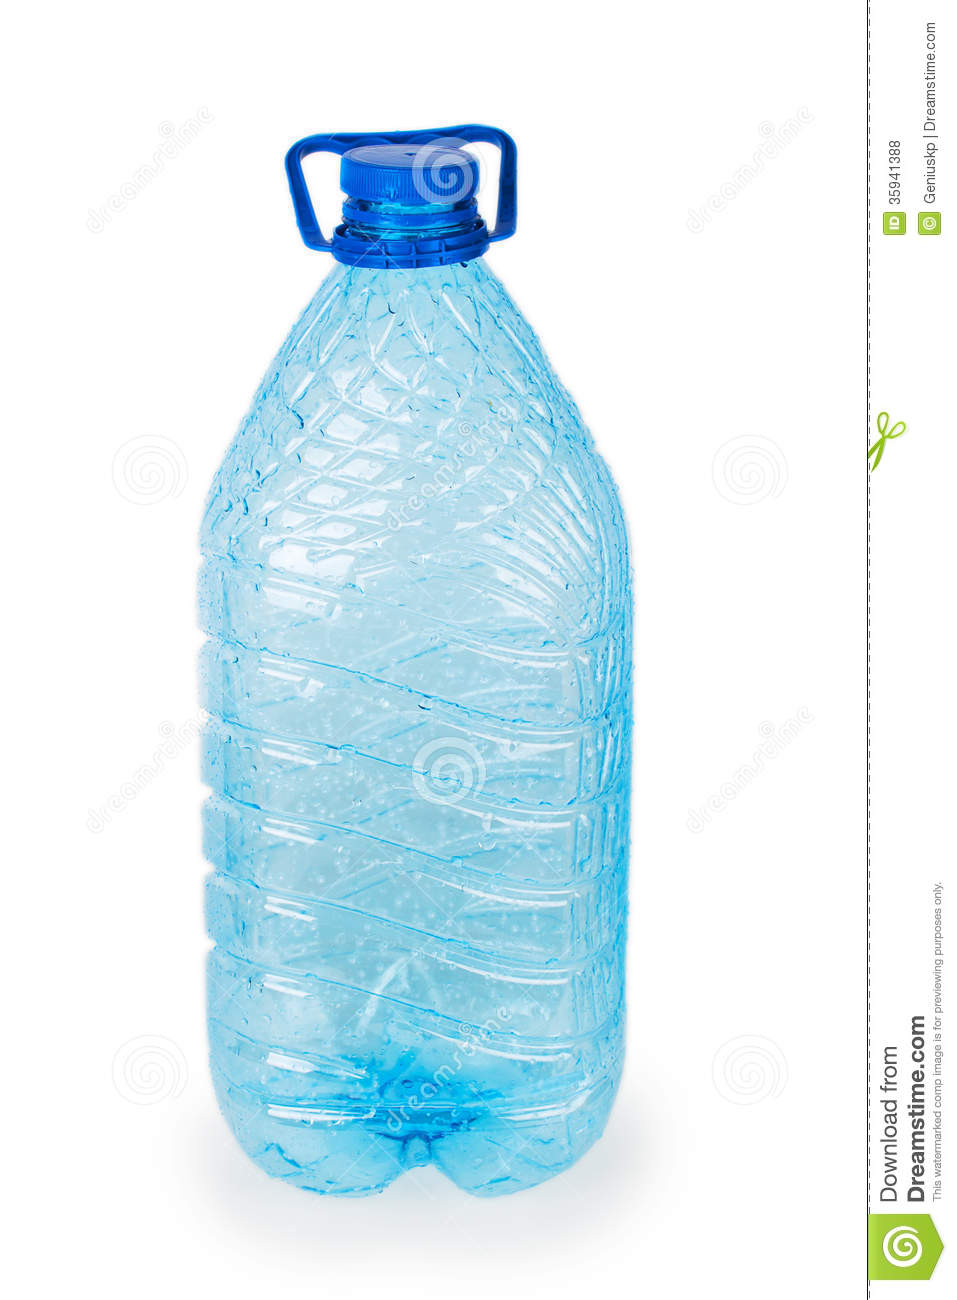 Empty plastic bottle royalty free stock photos image for What to do with empty plastic bottles